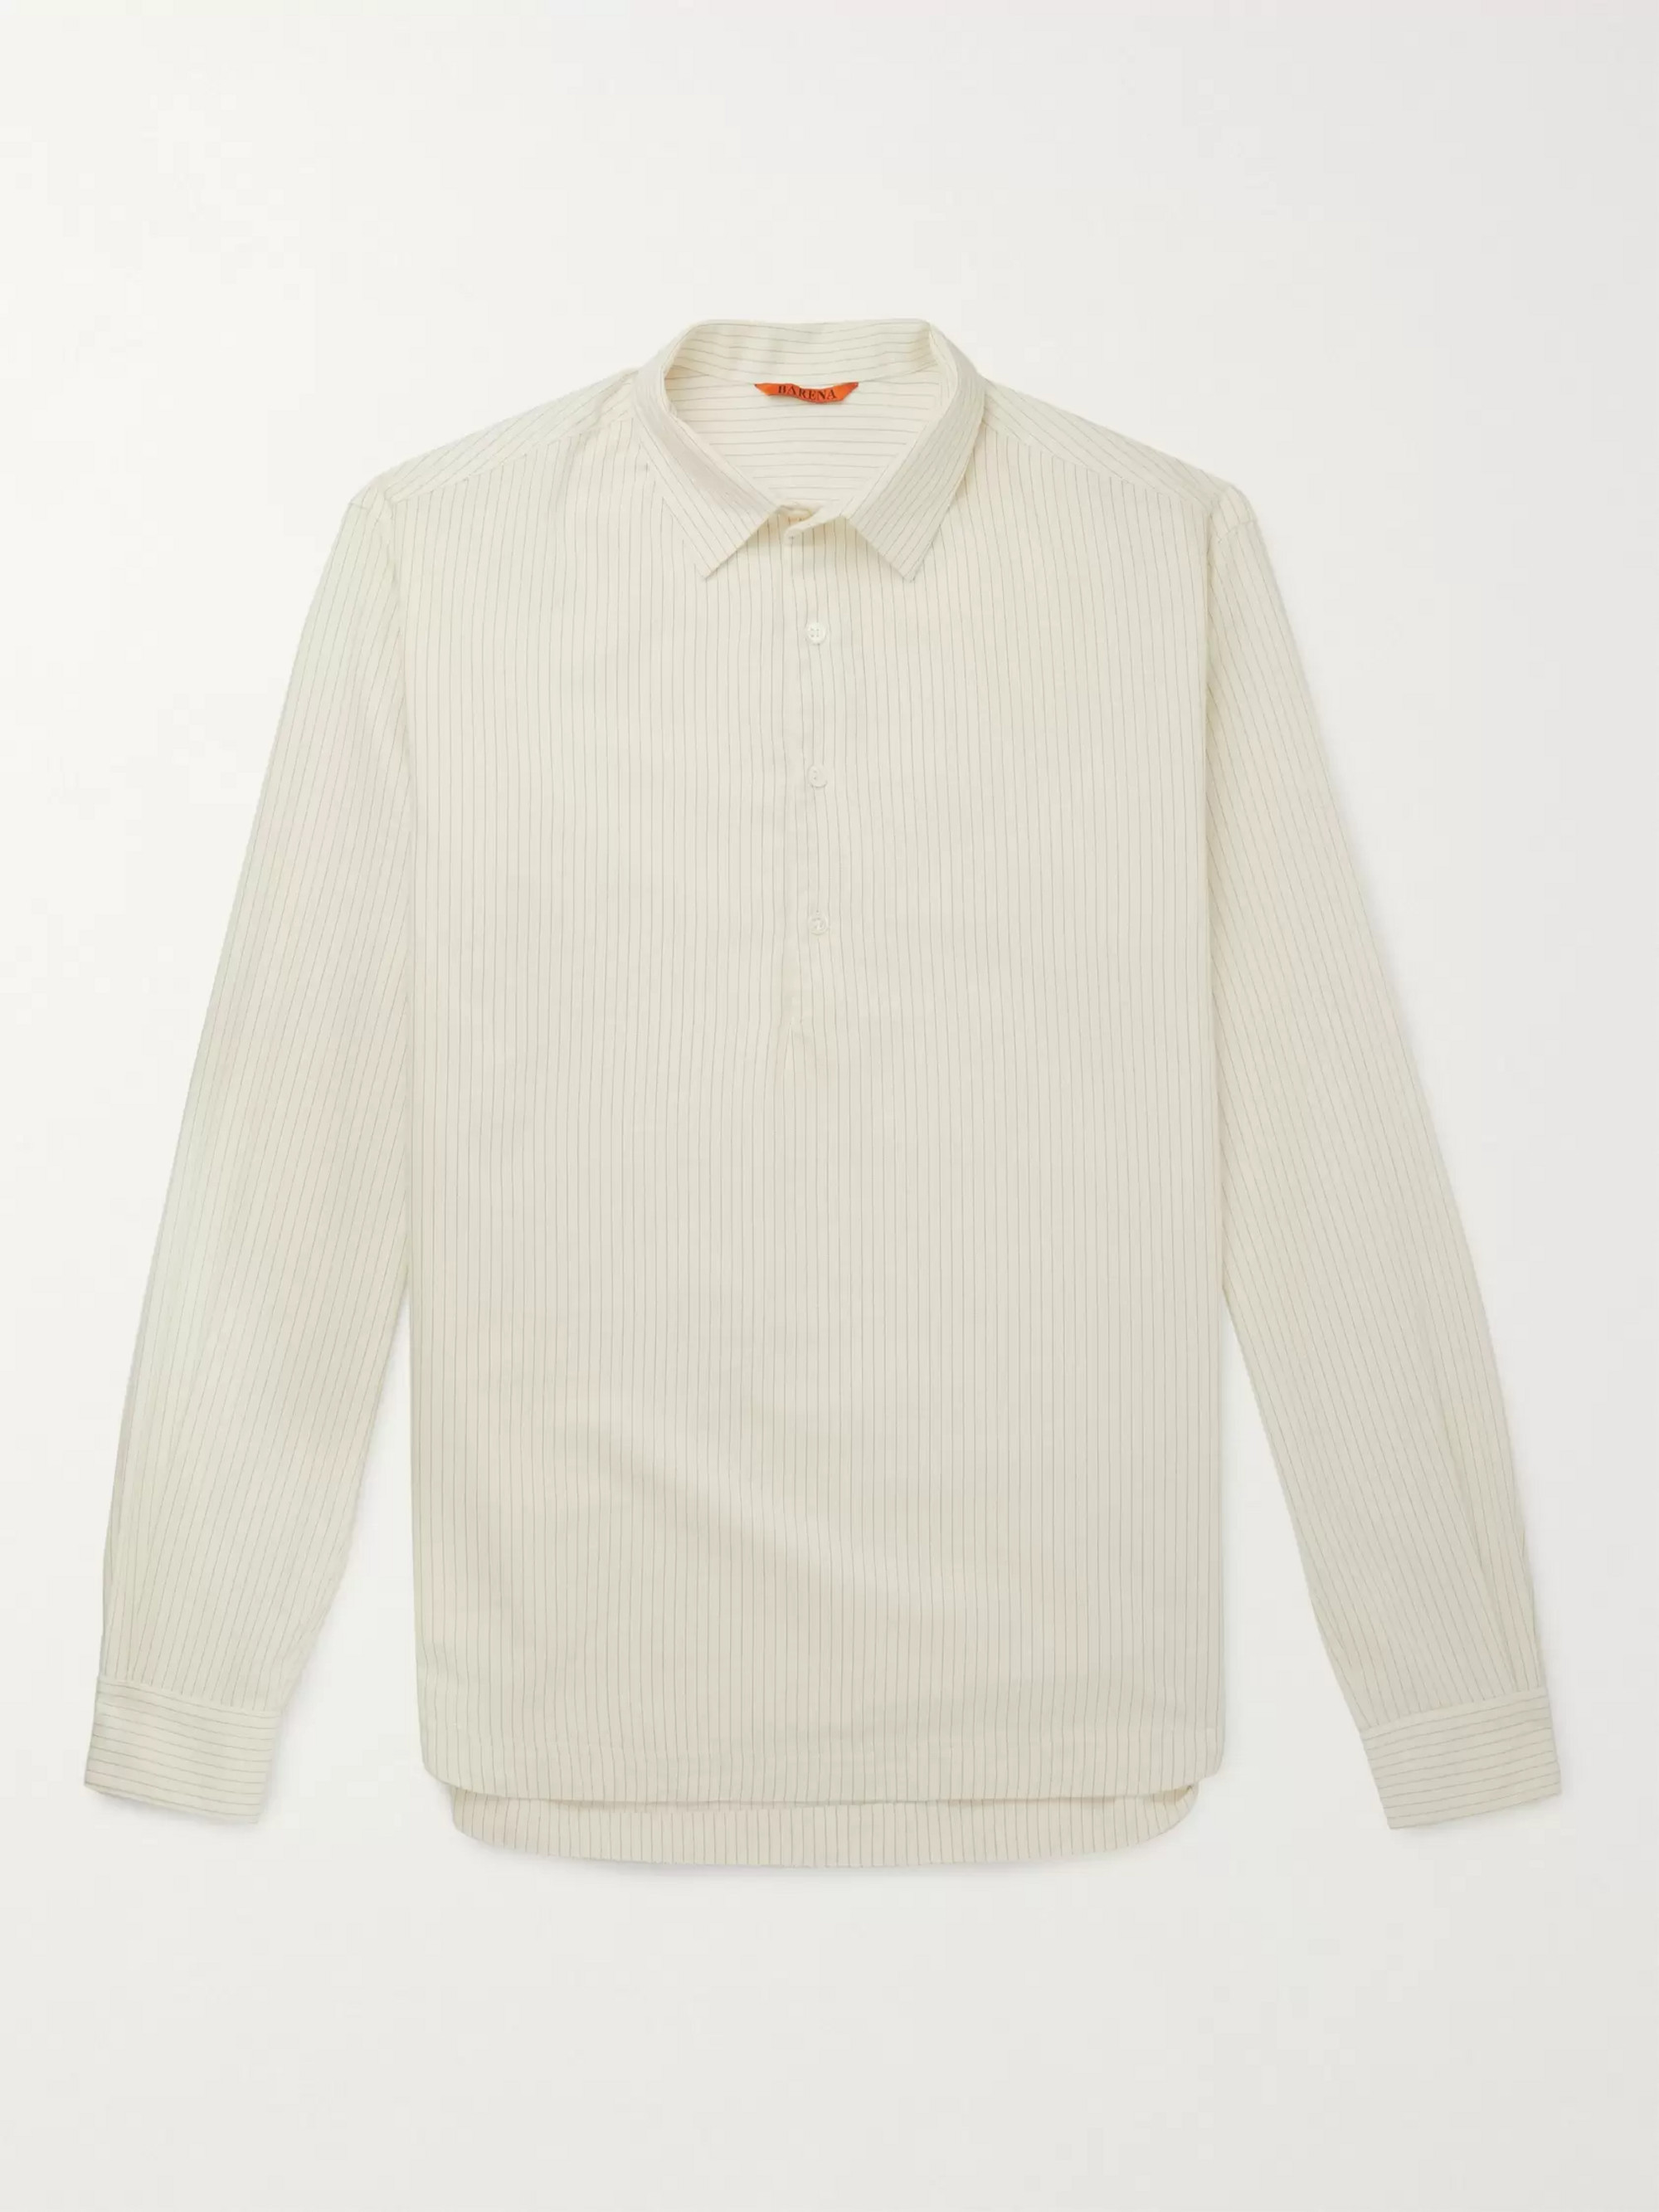 Barena Striped Cotton and Wool-Blend Half-Placket Shirt